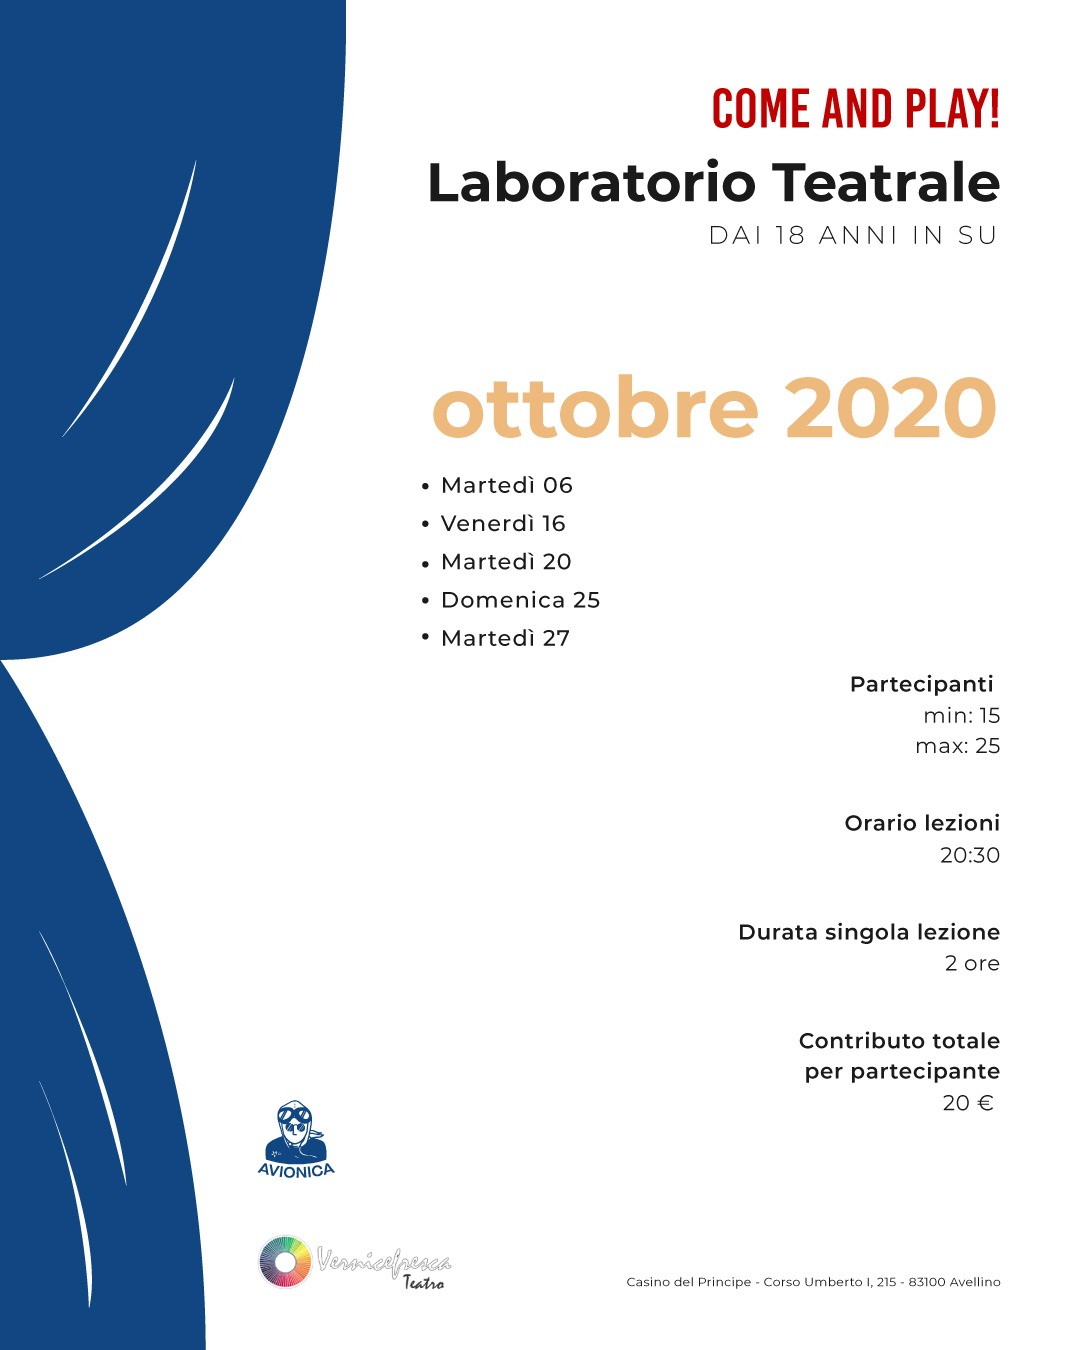 COME AND PLAY! – Laboratorio Teatrale in collaborazione con Avionica Avellino